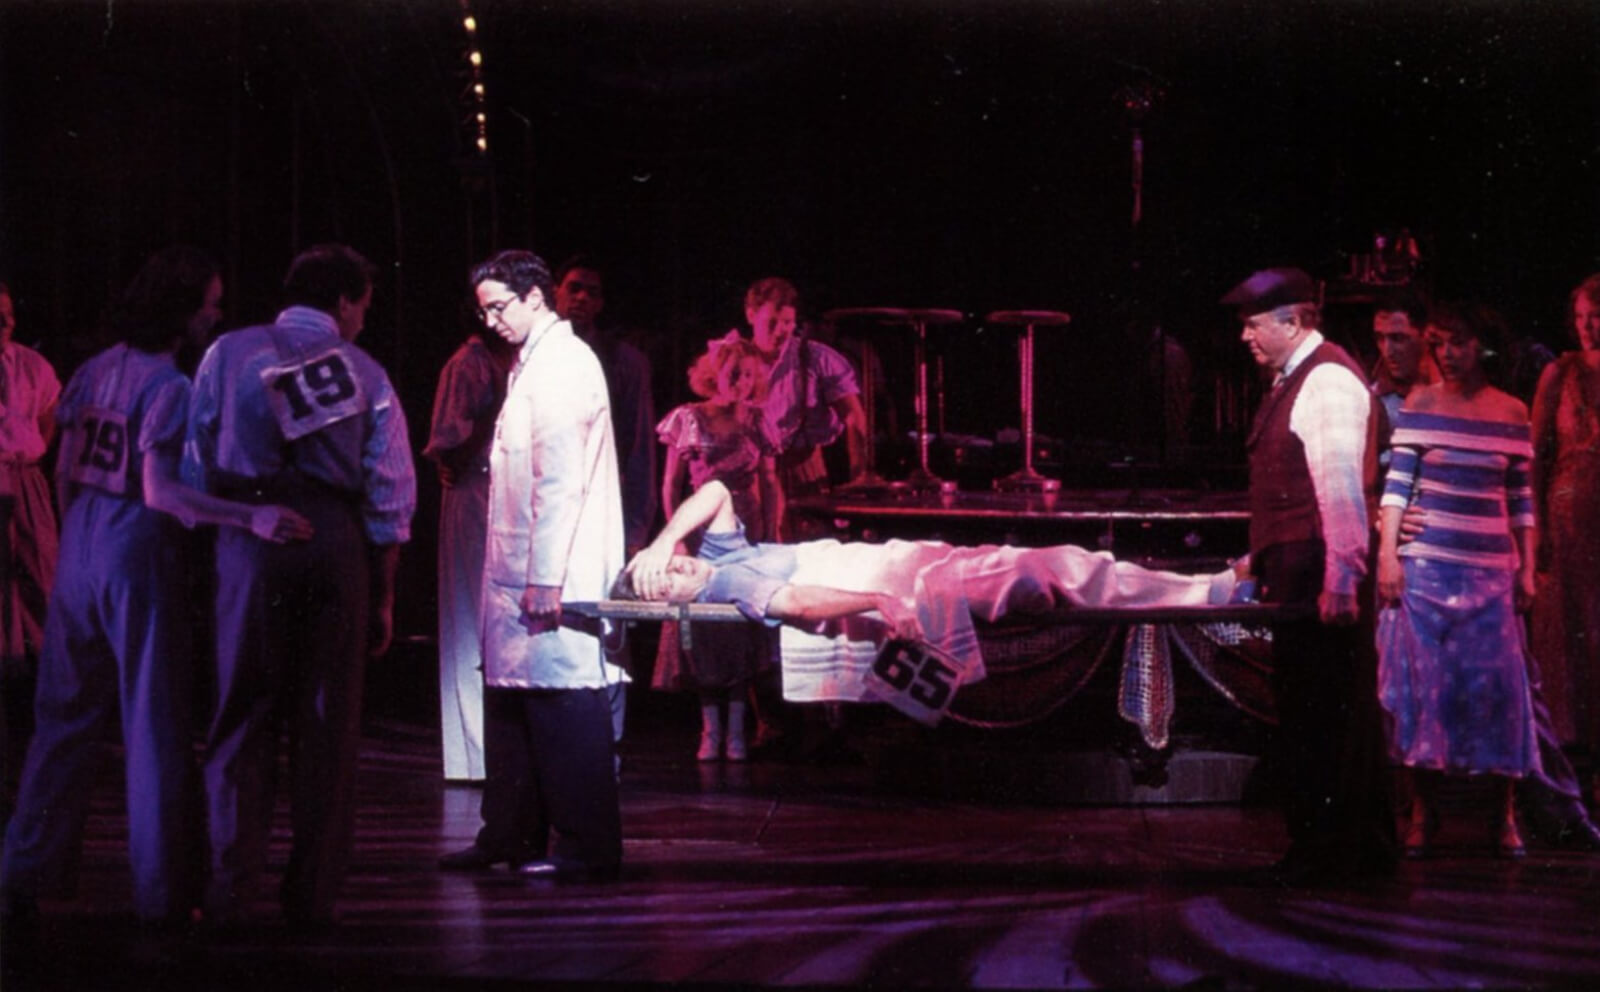 Man is carried out on a stretcher, exhausted, but still holding his dance card, which is #65.